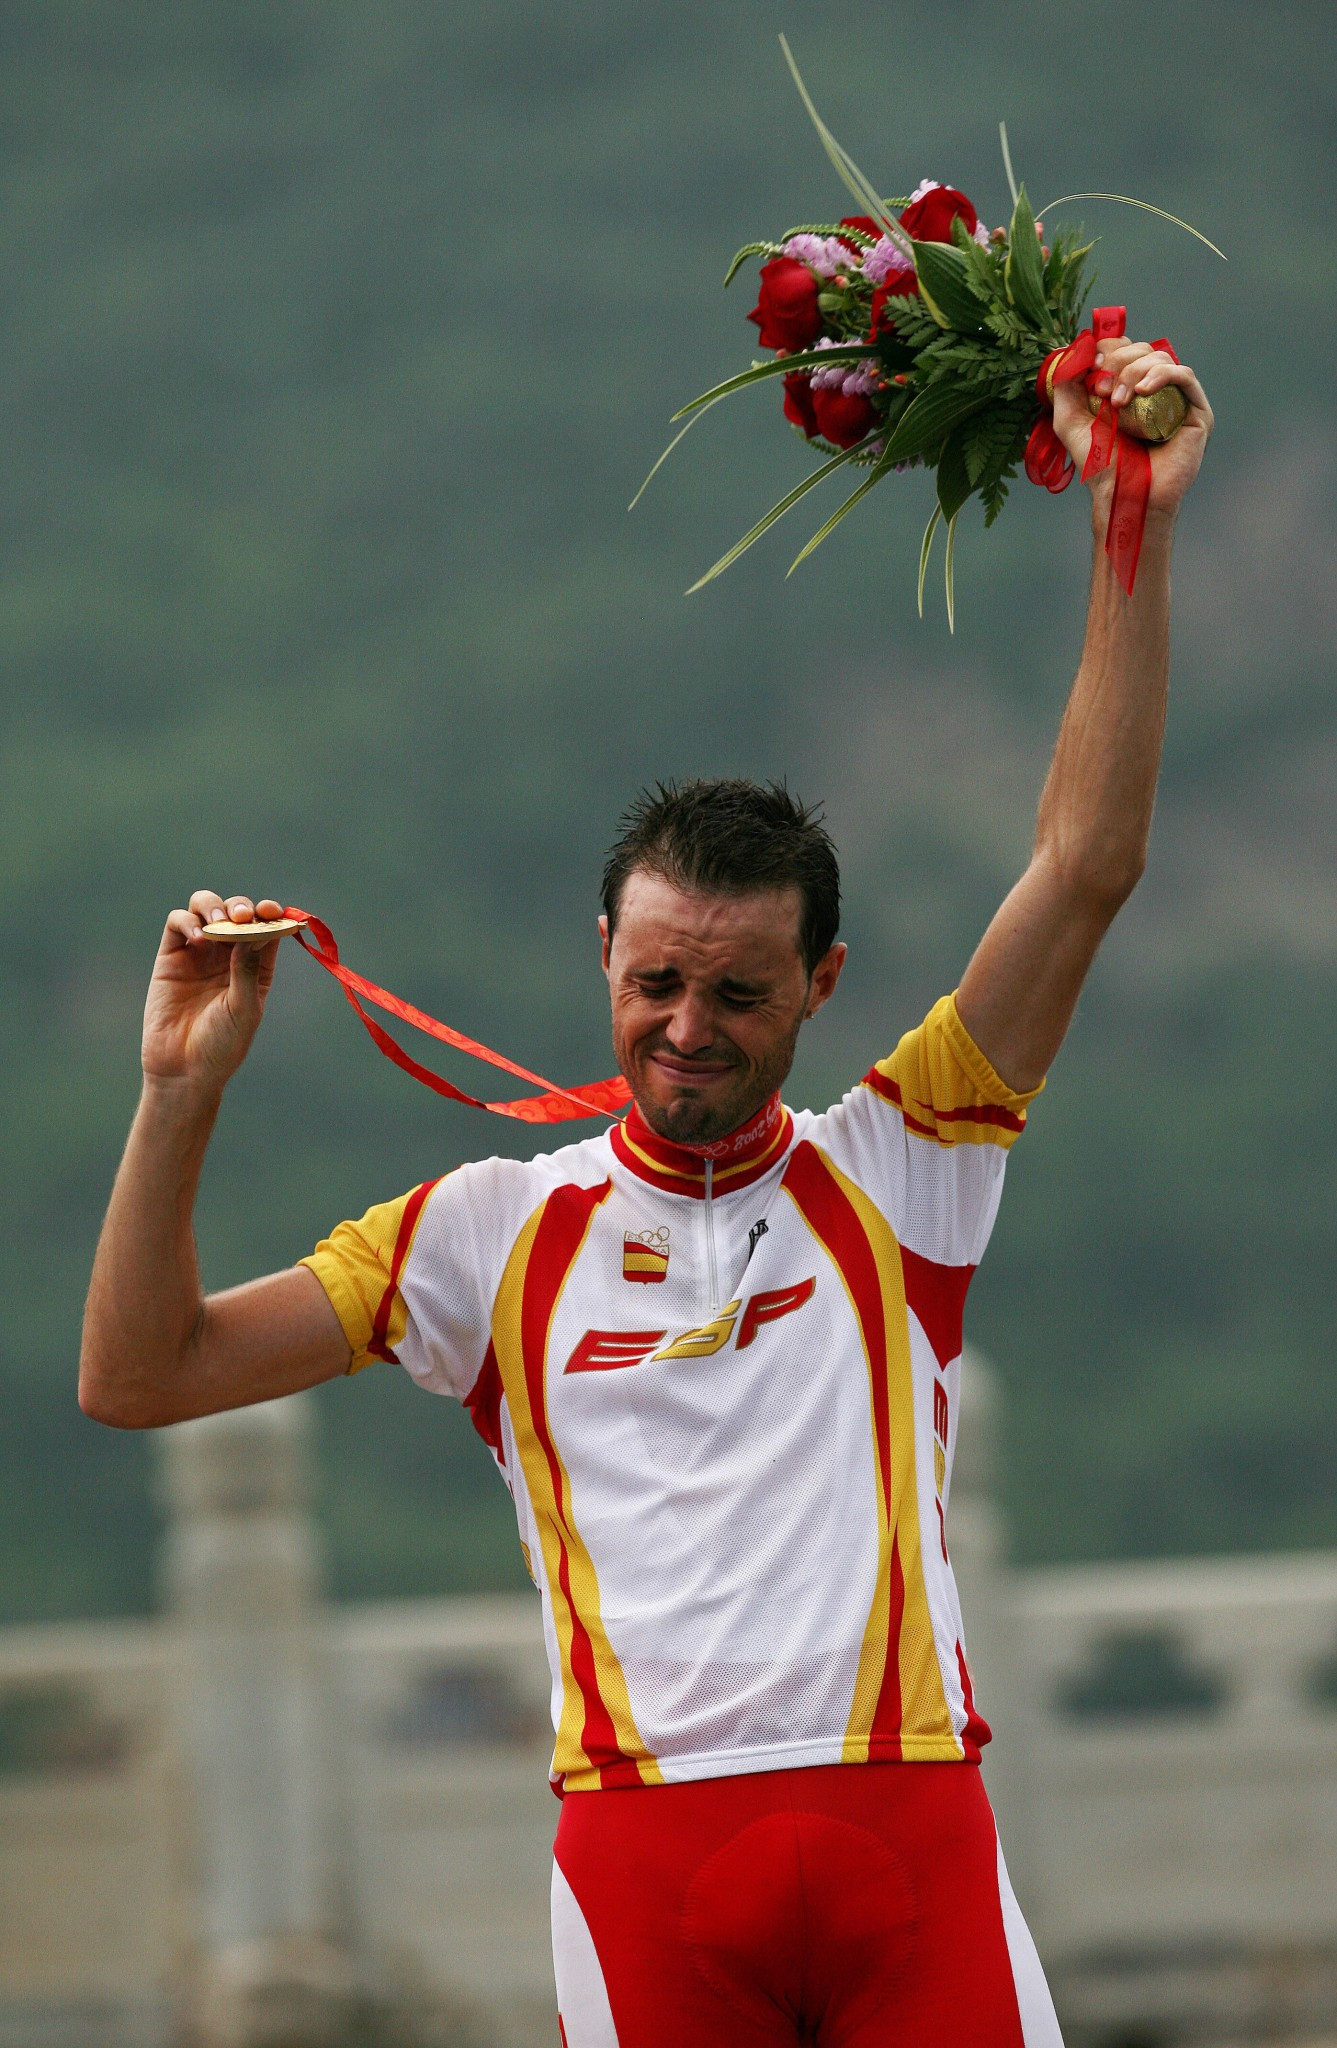 Samuel Sánchez won the Olympic road race title at Beijing 2008 ©Getty Images